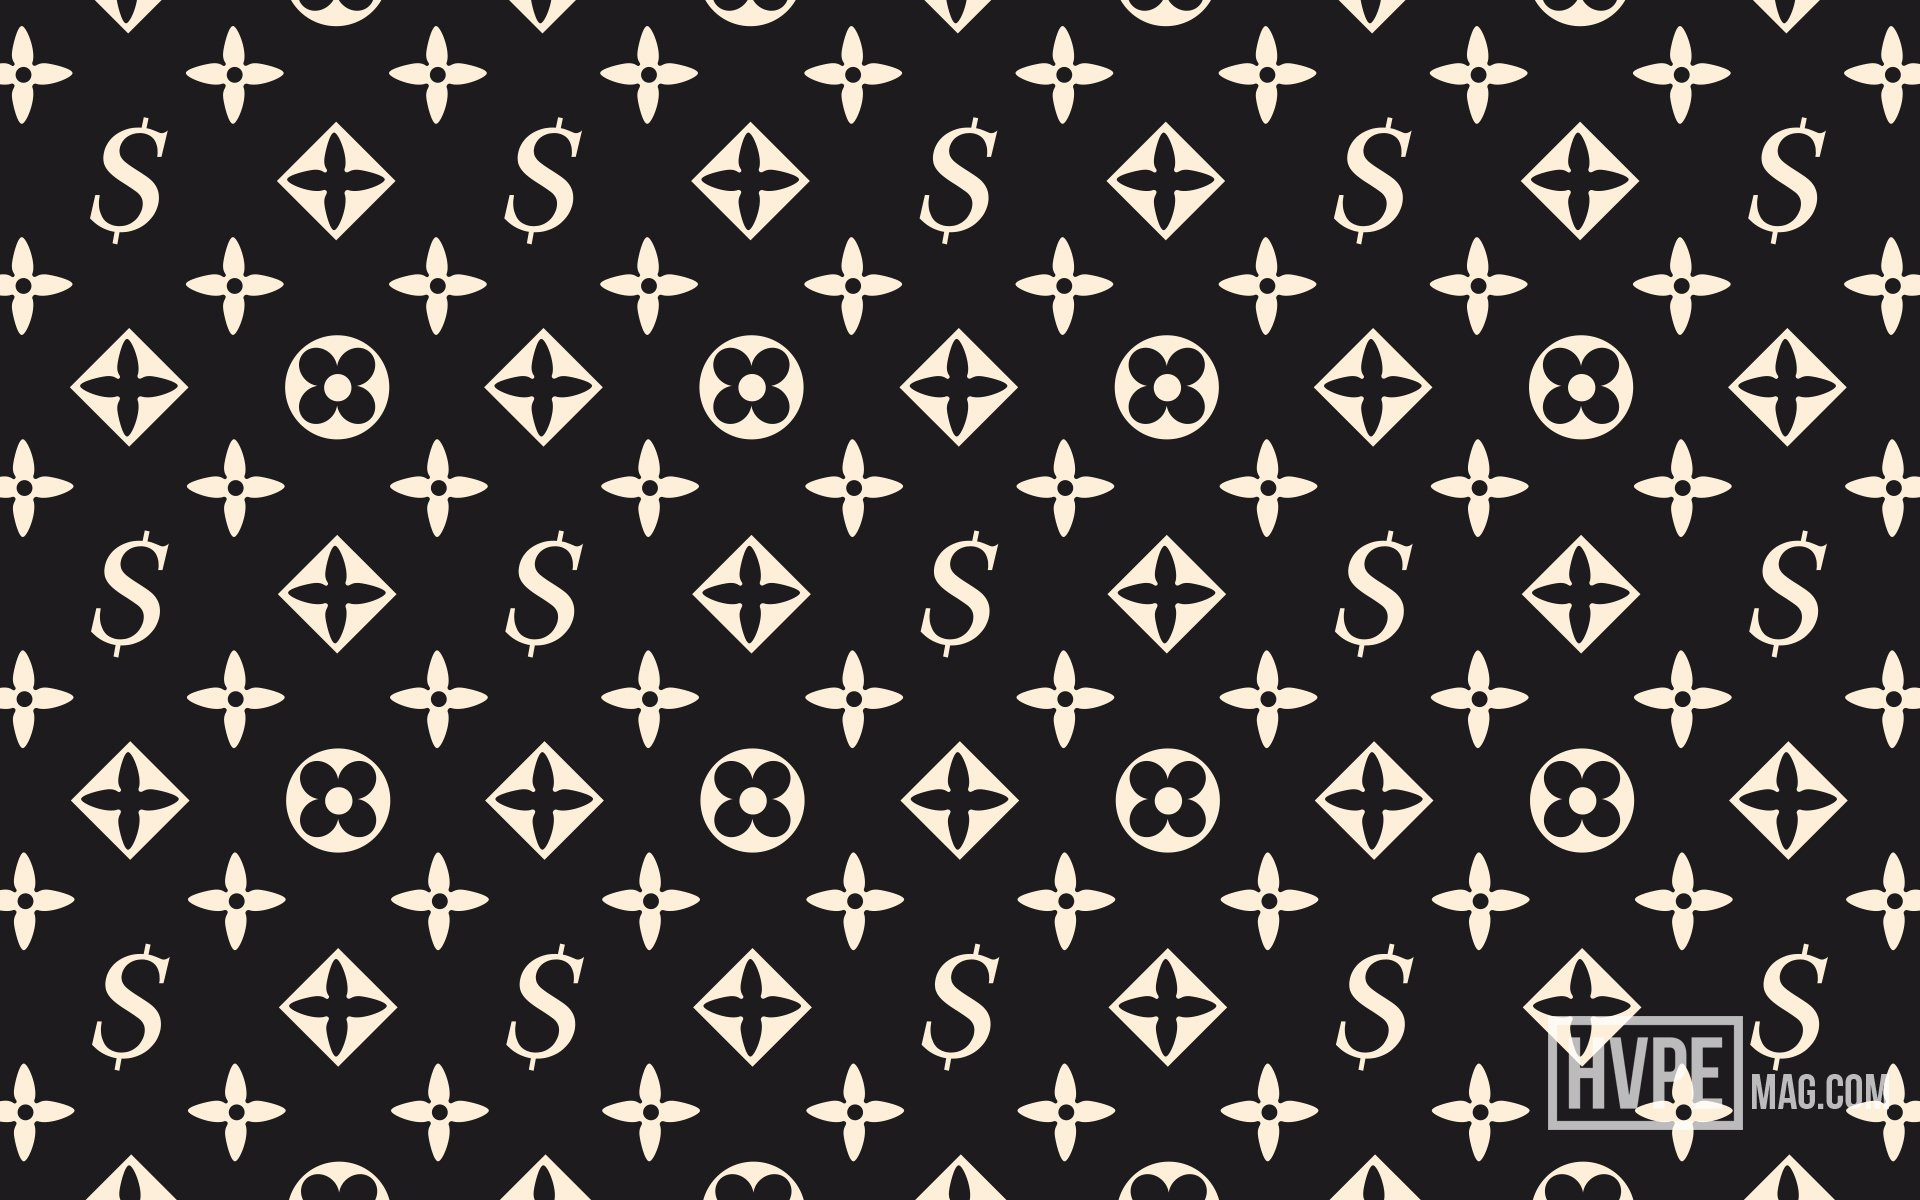 10 louis vuitton hd wallpapers | background images - wallpaper abyss